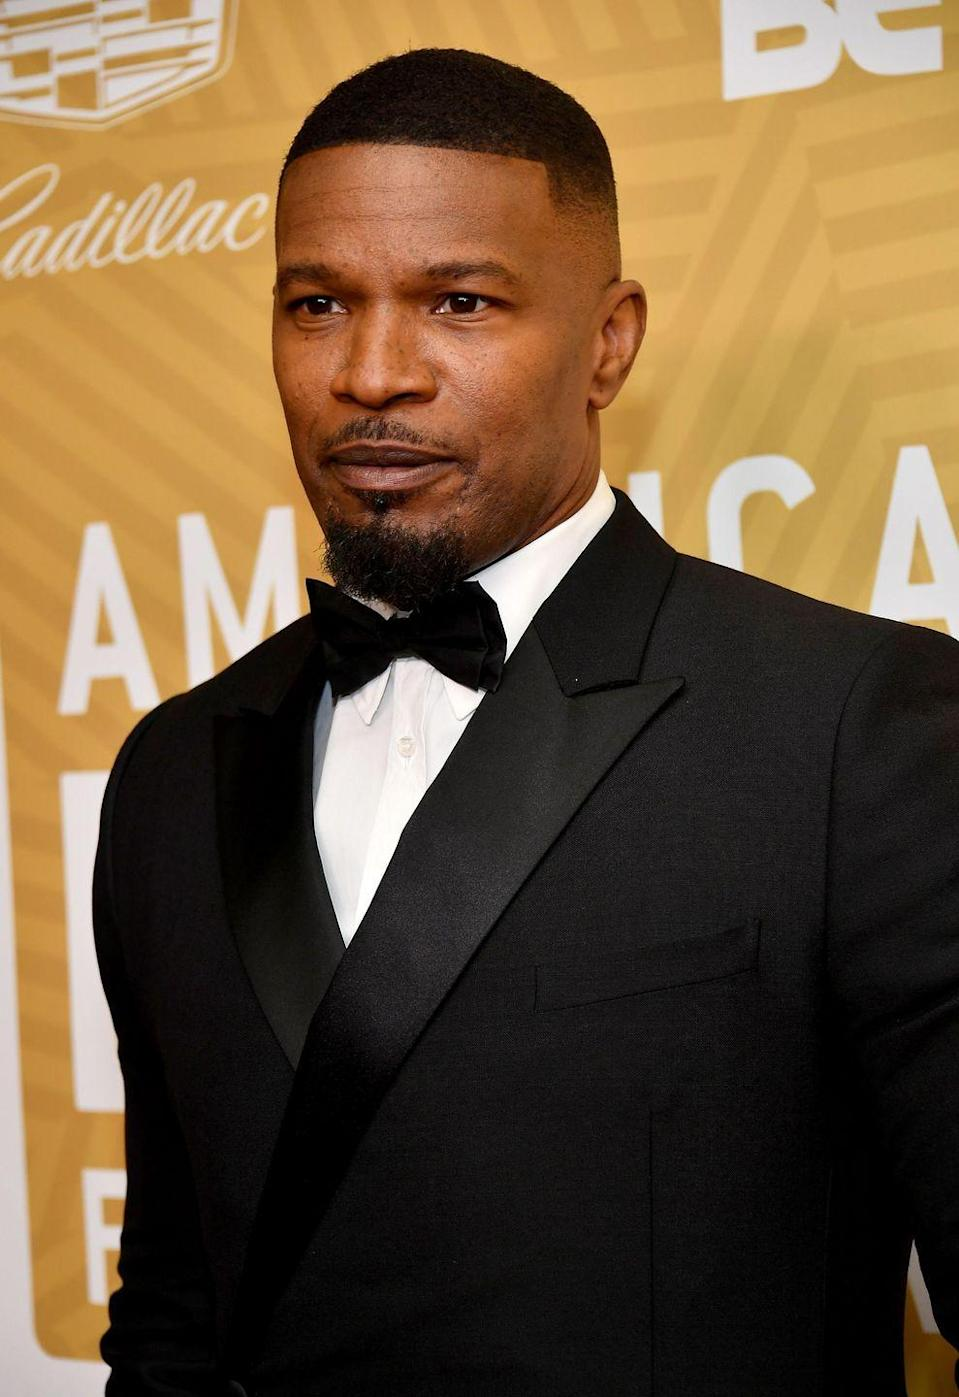 <p>Foxx probably has a bigger career now than he did back in the '90s. He hosts and produces a game show called <em>Beat Shazam</em>, and he's still acting in films like <em>Just Mercy. </em>He's going to be playing Mike Tyson in the upcoming film <em>Finding Mike</em>. </p>